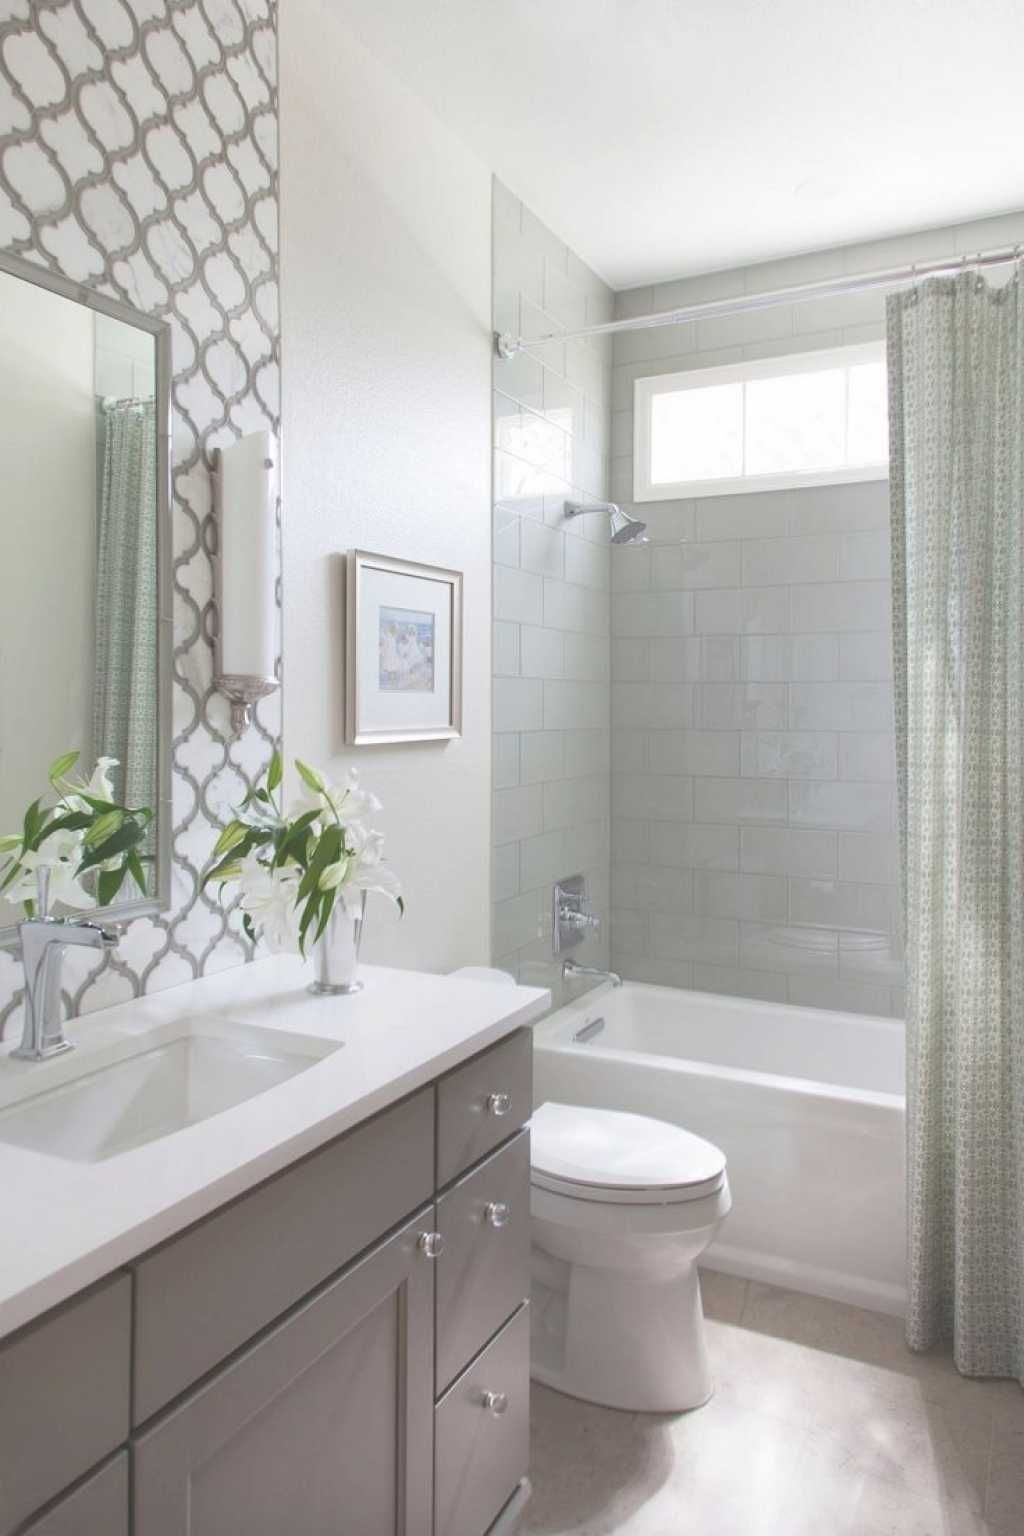 33 Inspirational Small Bathroom Remodel Before And After My Home - Small-bathroom-remodels